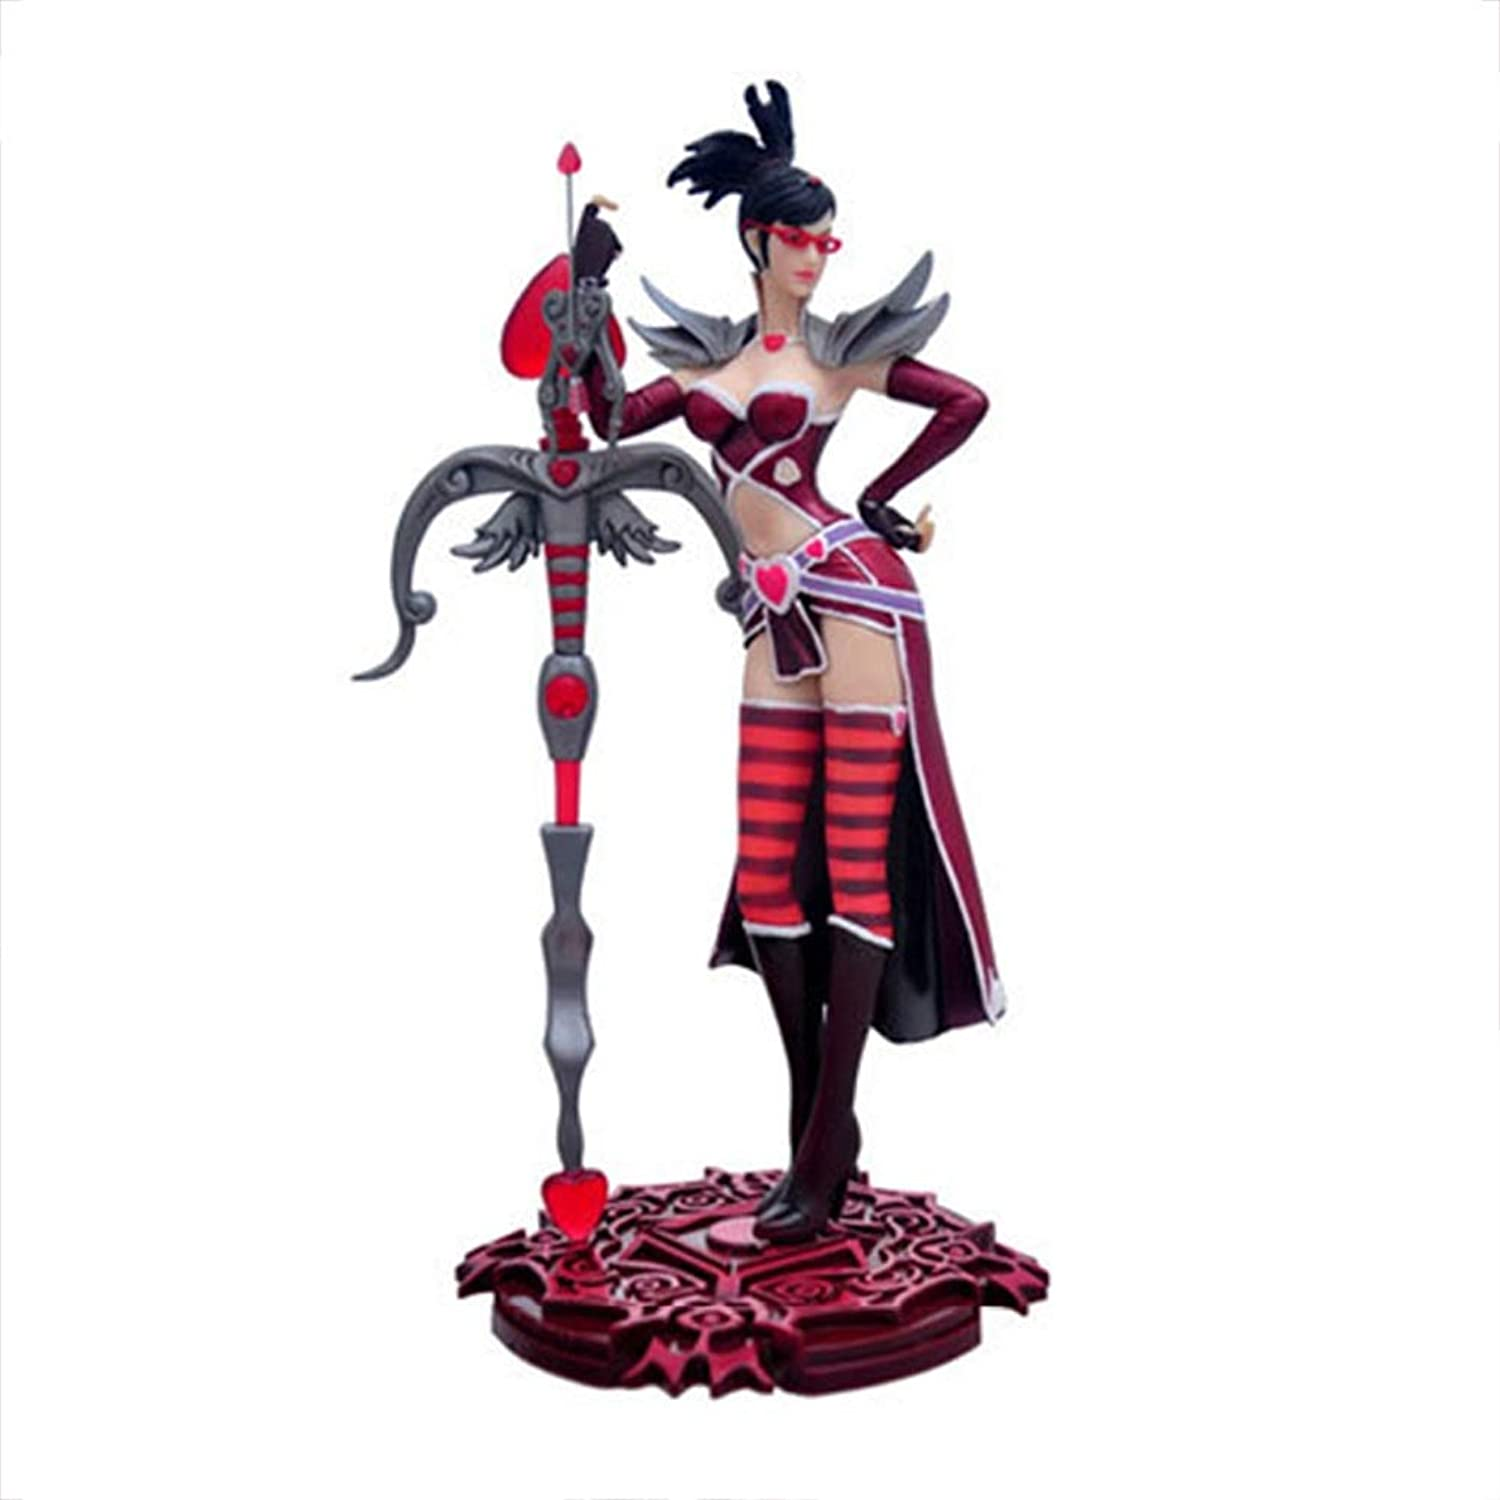 GABENG Game Characters Figures Toy Model Souvenir Crafts Ornament Statue Nendgoldid Doll Decoration League of Legends LOL The Night Hunter,Vayne